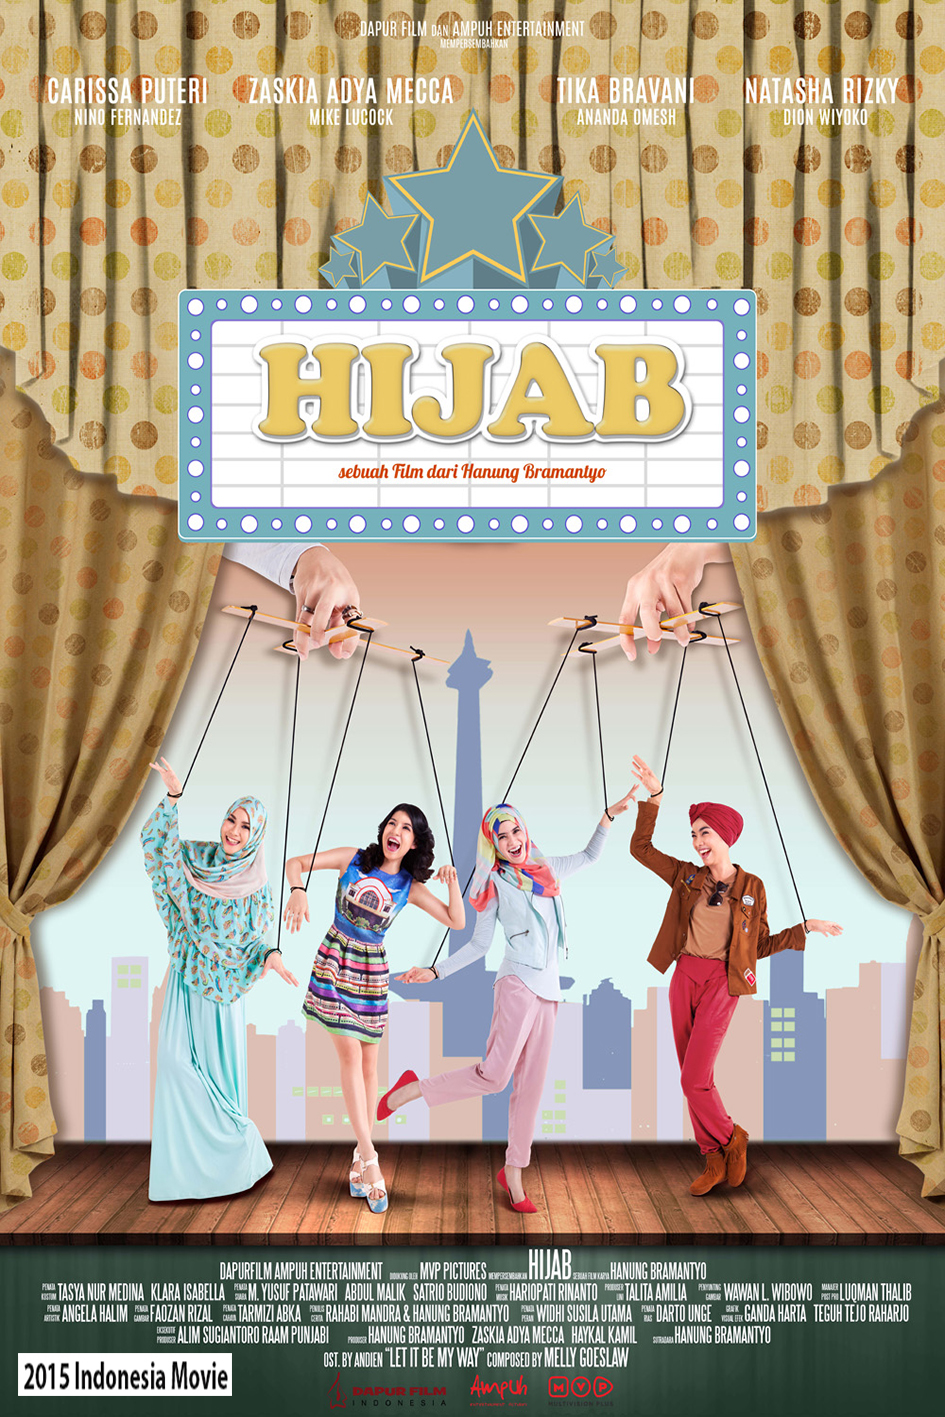 Hijab [2015 Indonesia Movie]